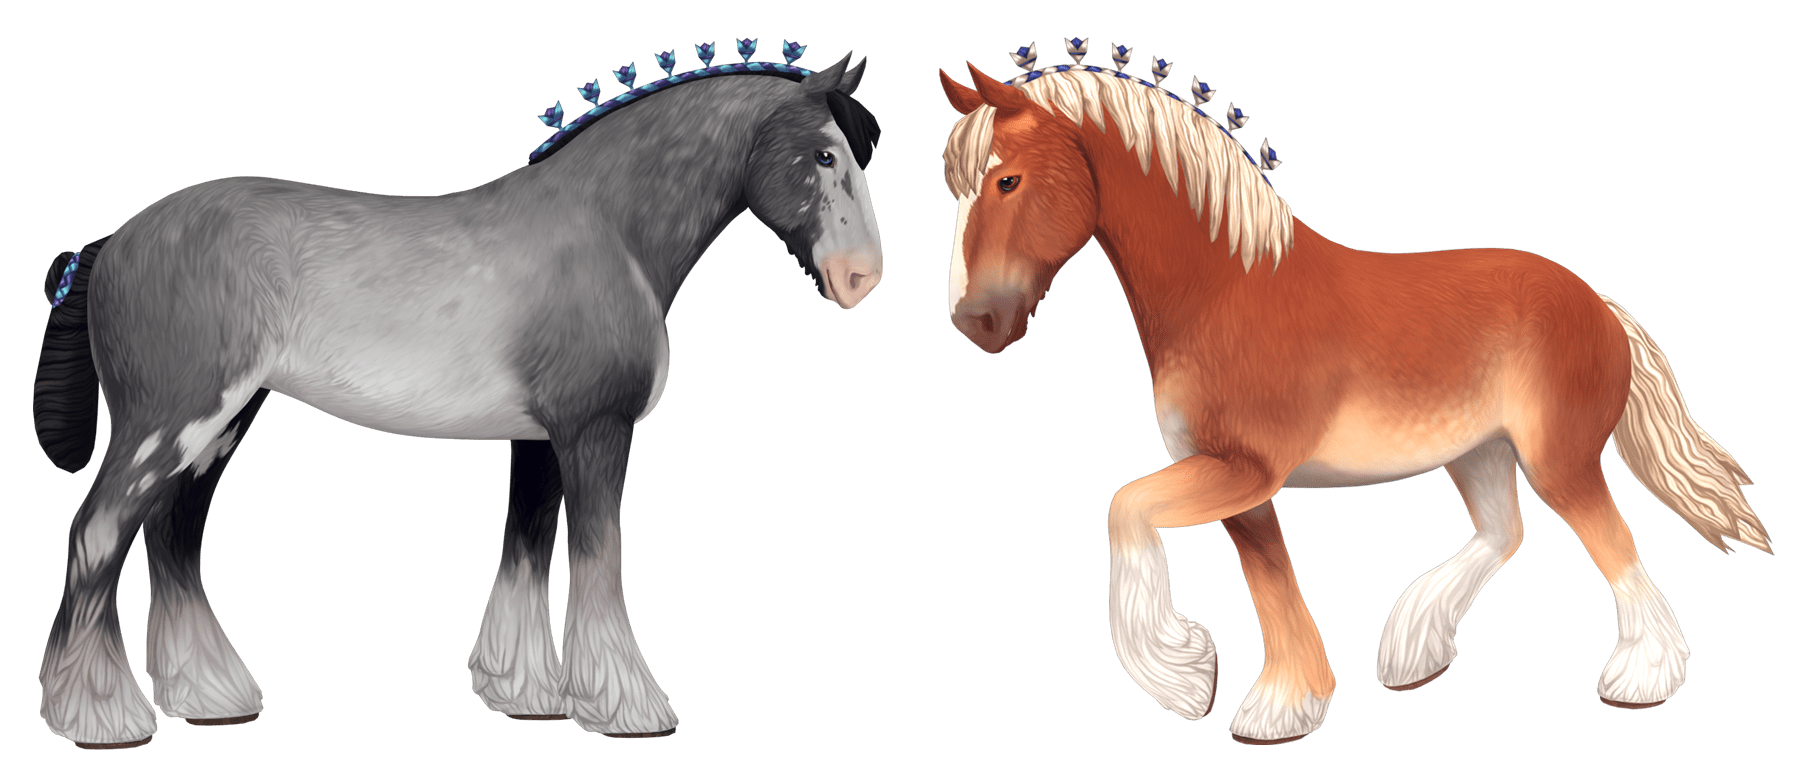 Horses In The Fall Wallpaper Download Free Fan Art Resources Star Stable